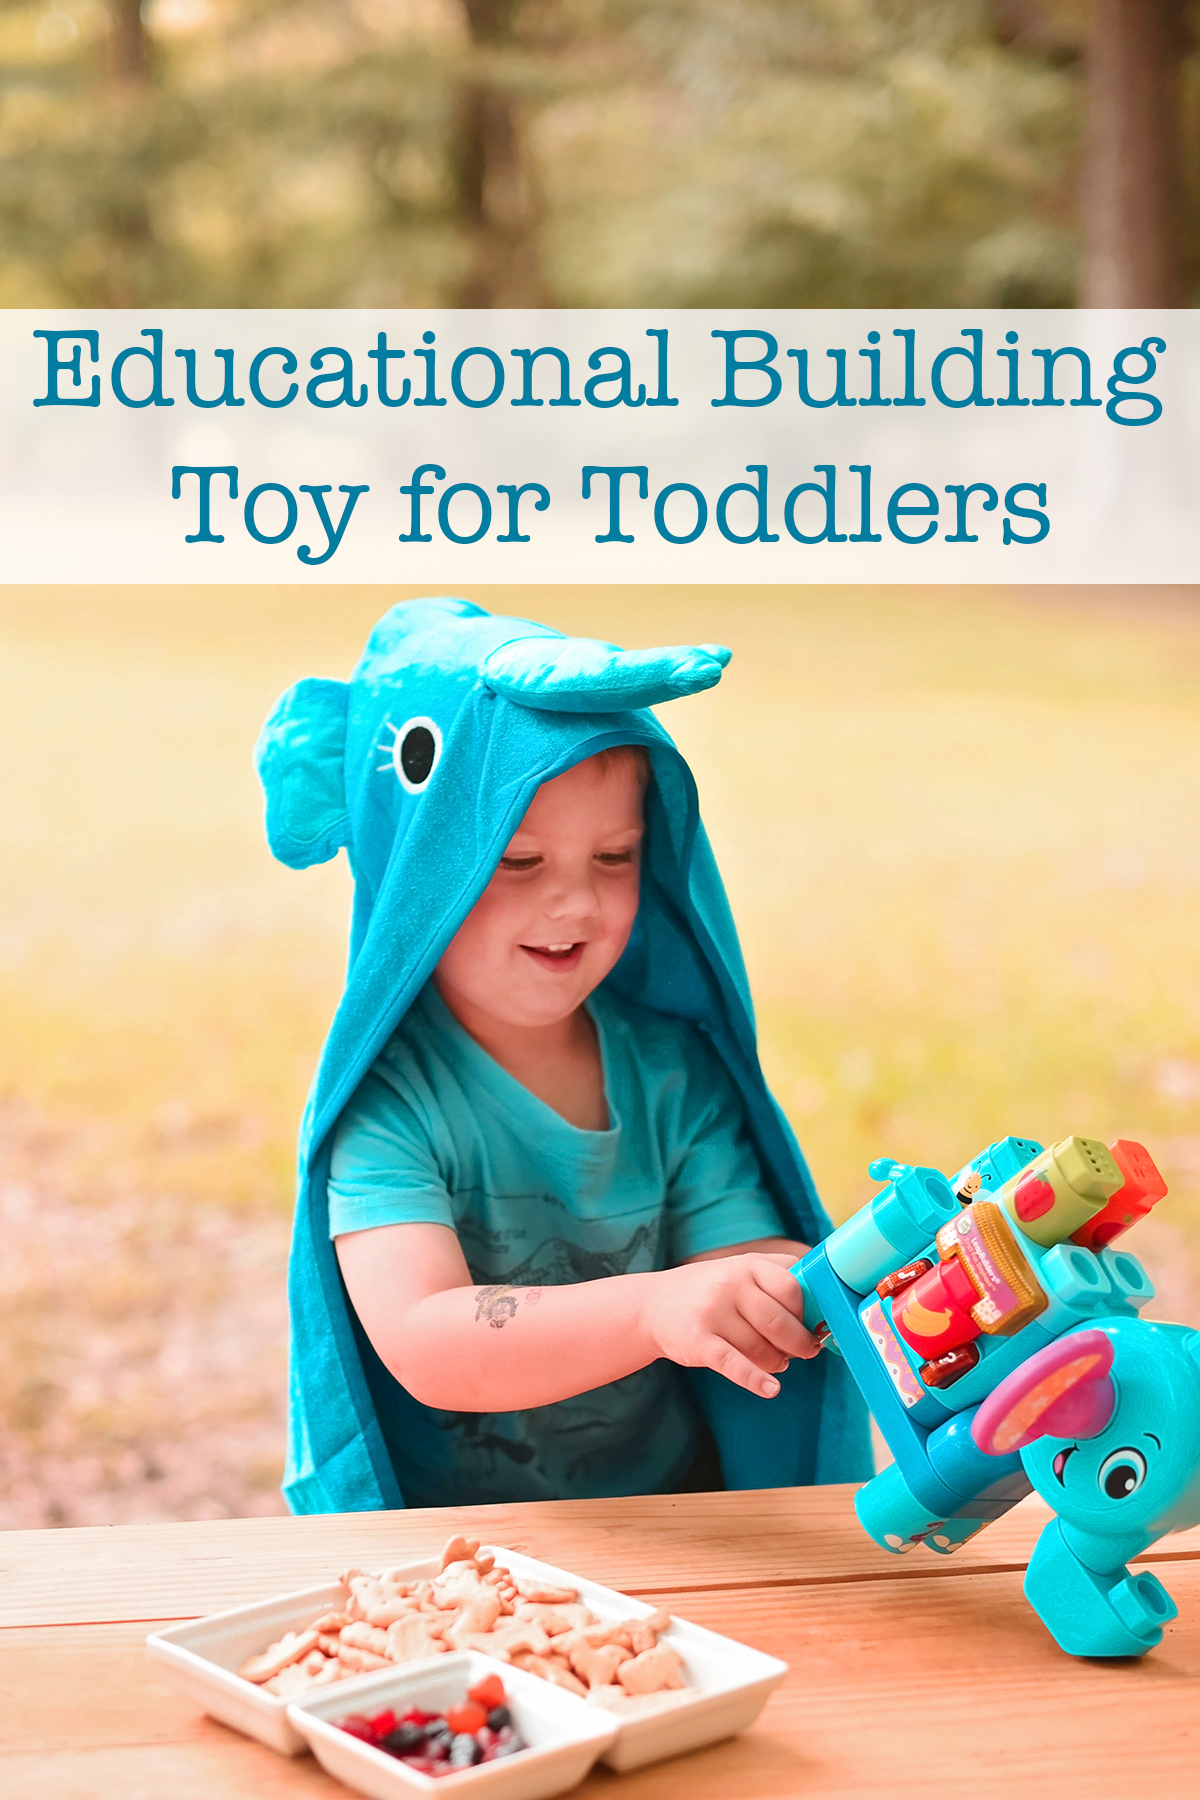 Educational Building Toy for Toddlers